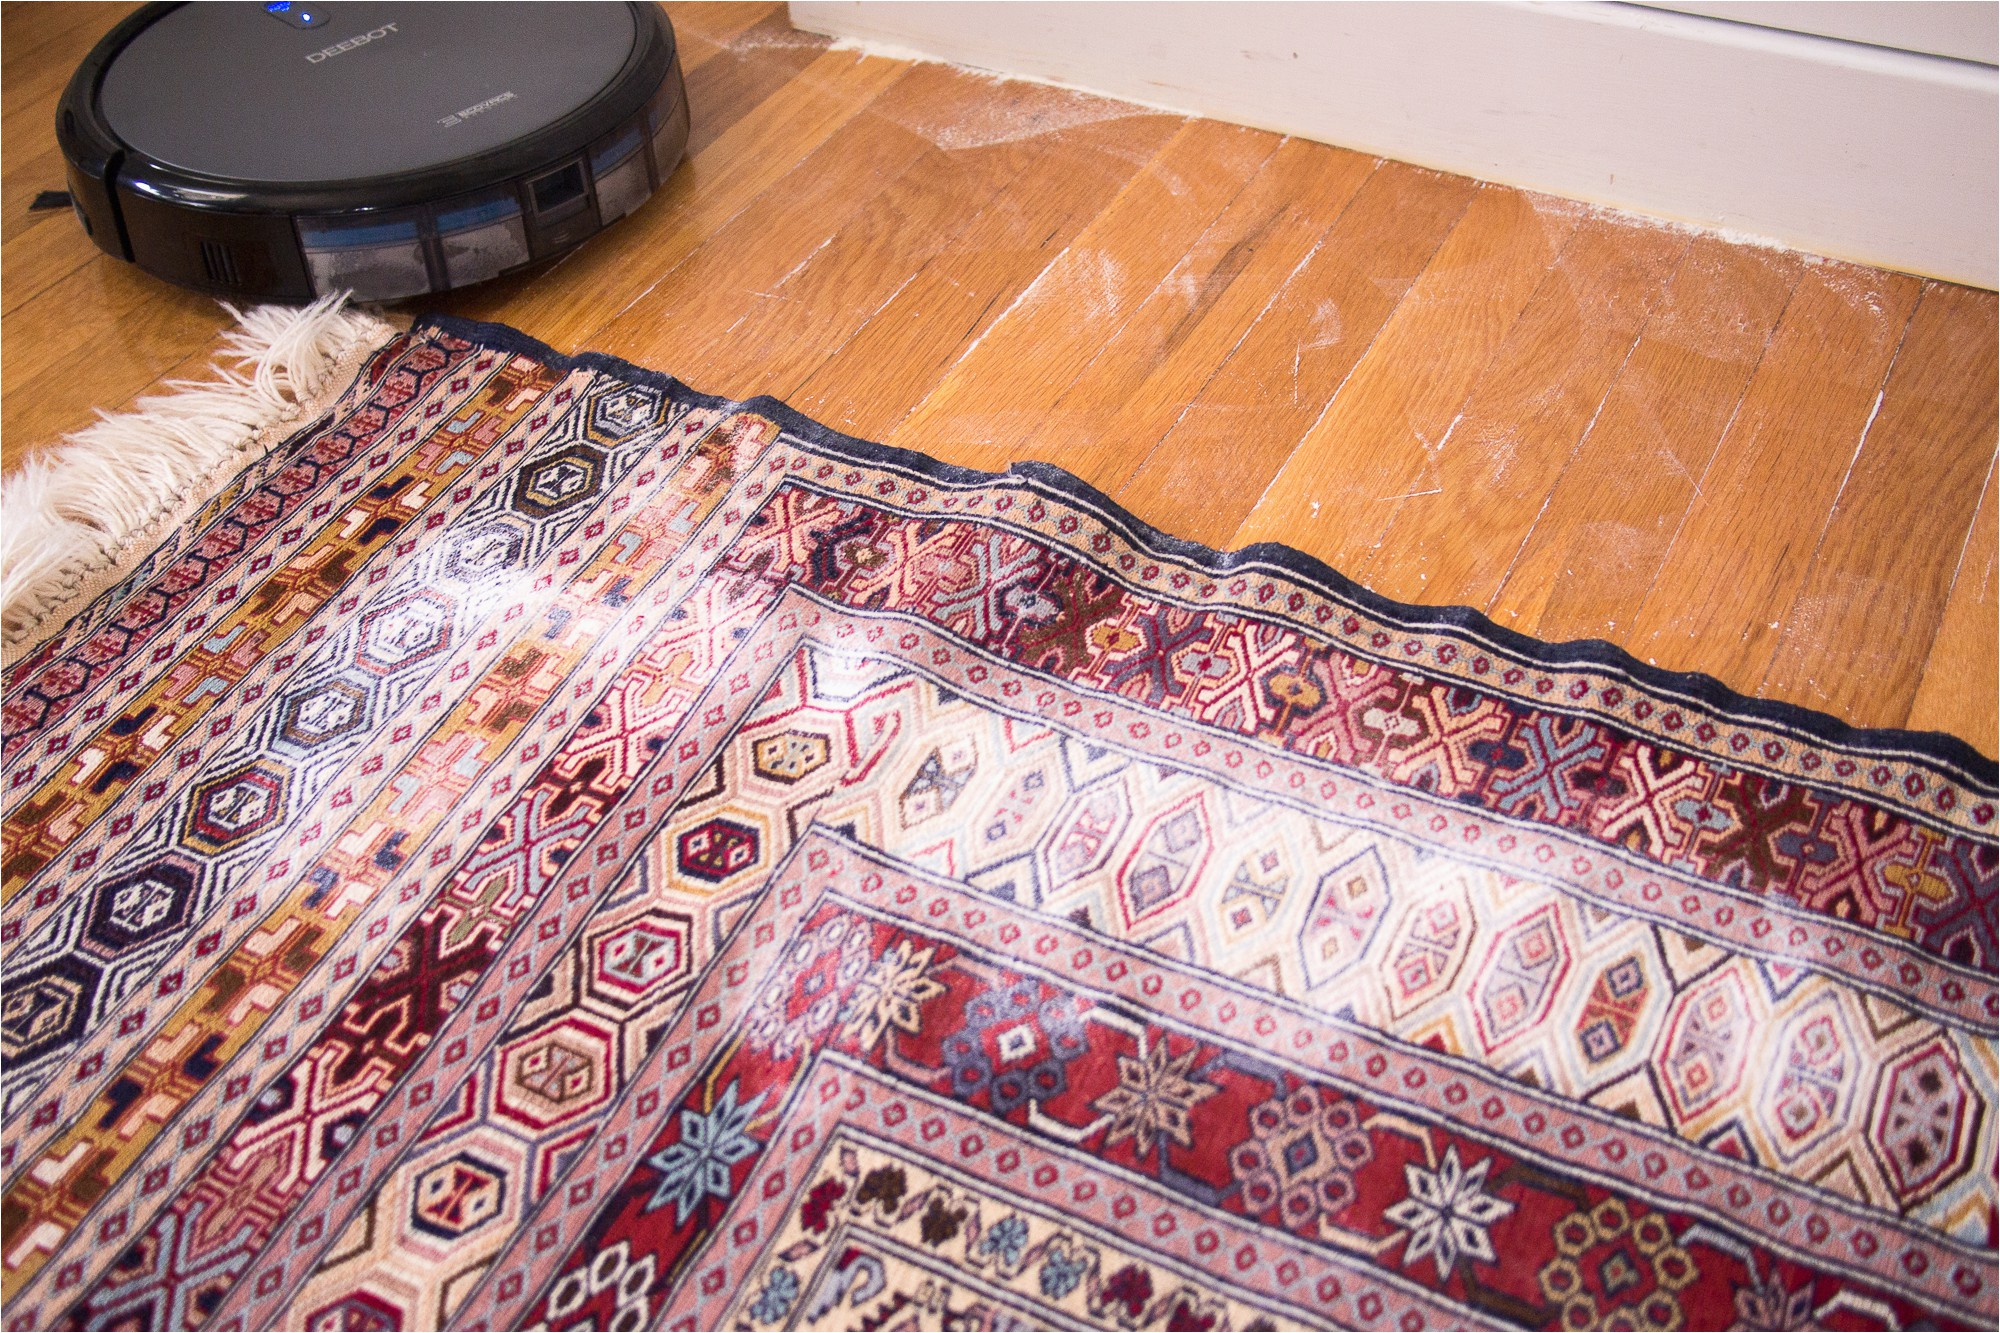 Best Robot Vacuum for area Rugs Roomba 980 Rug Fringe